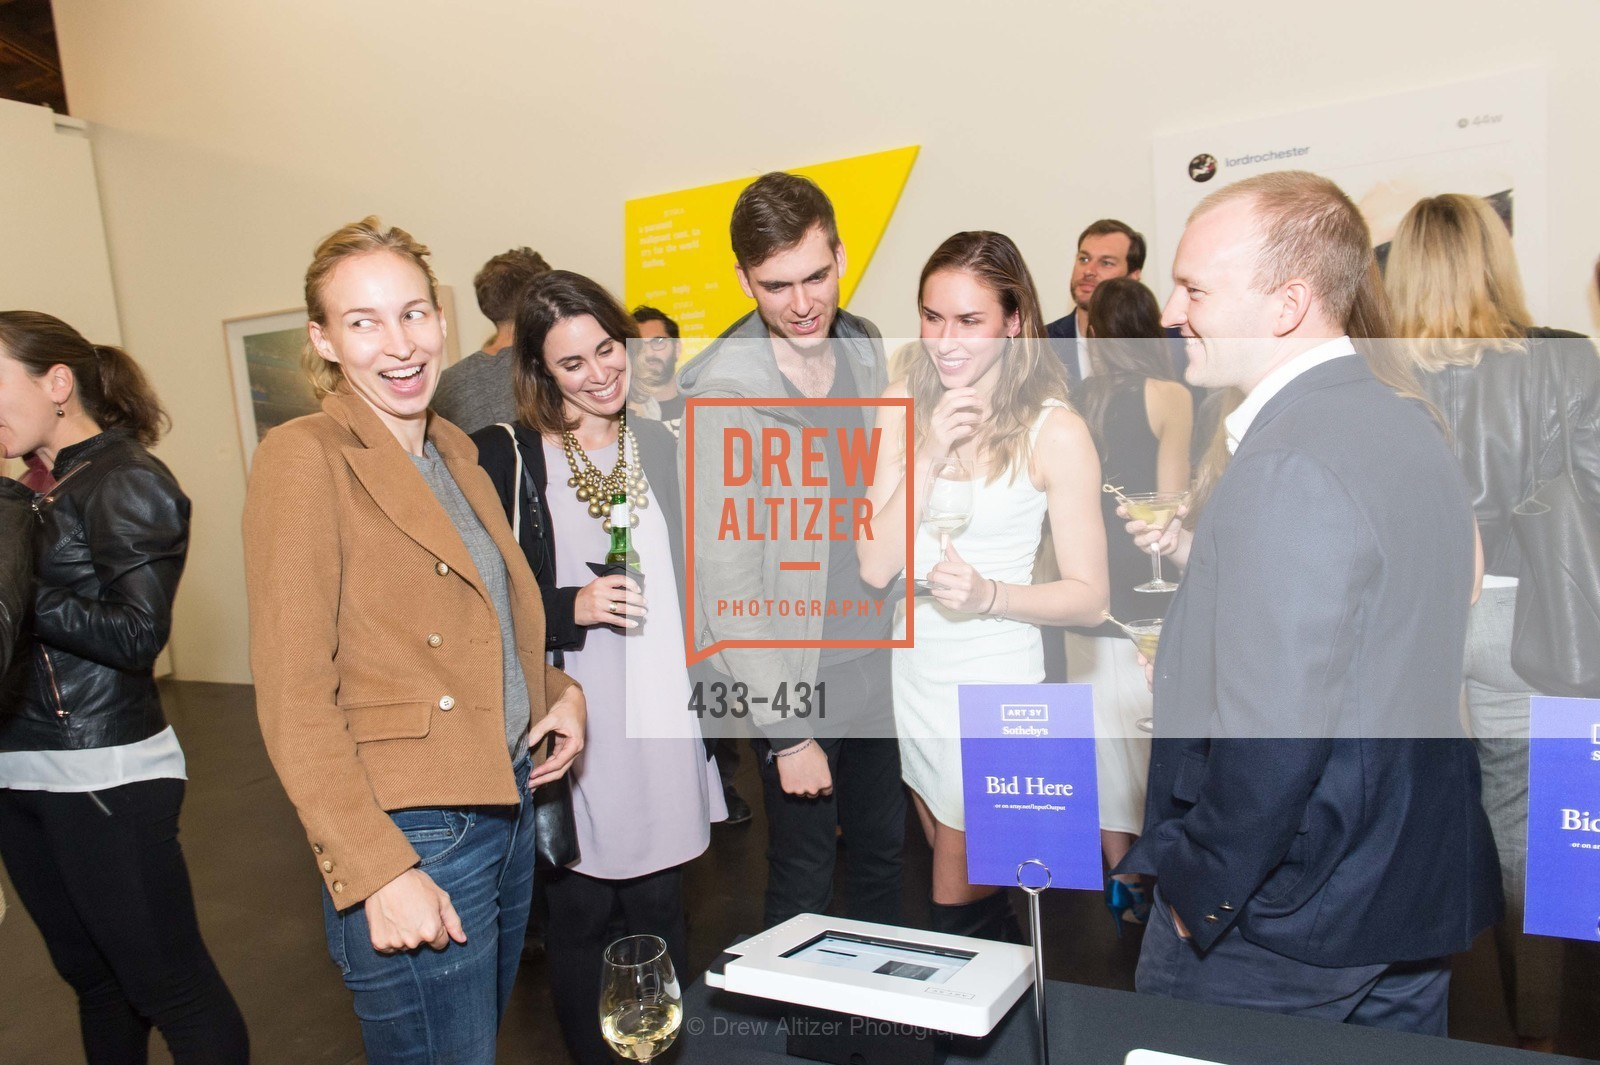 Hailey Melin, Carter Cleveland, Felicity Conrad, Artsy + Sotheby's Closing Party, Fused. 1401 16th Street, October 30th, 2015,Drew Altizer, Drew Altizer Photography, full-service agency, private events, San Francisco photographer, photographer california